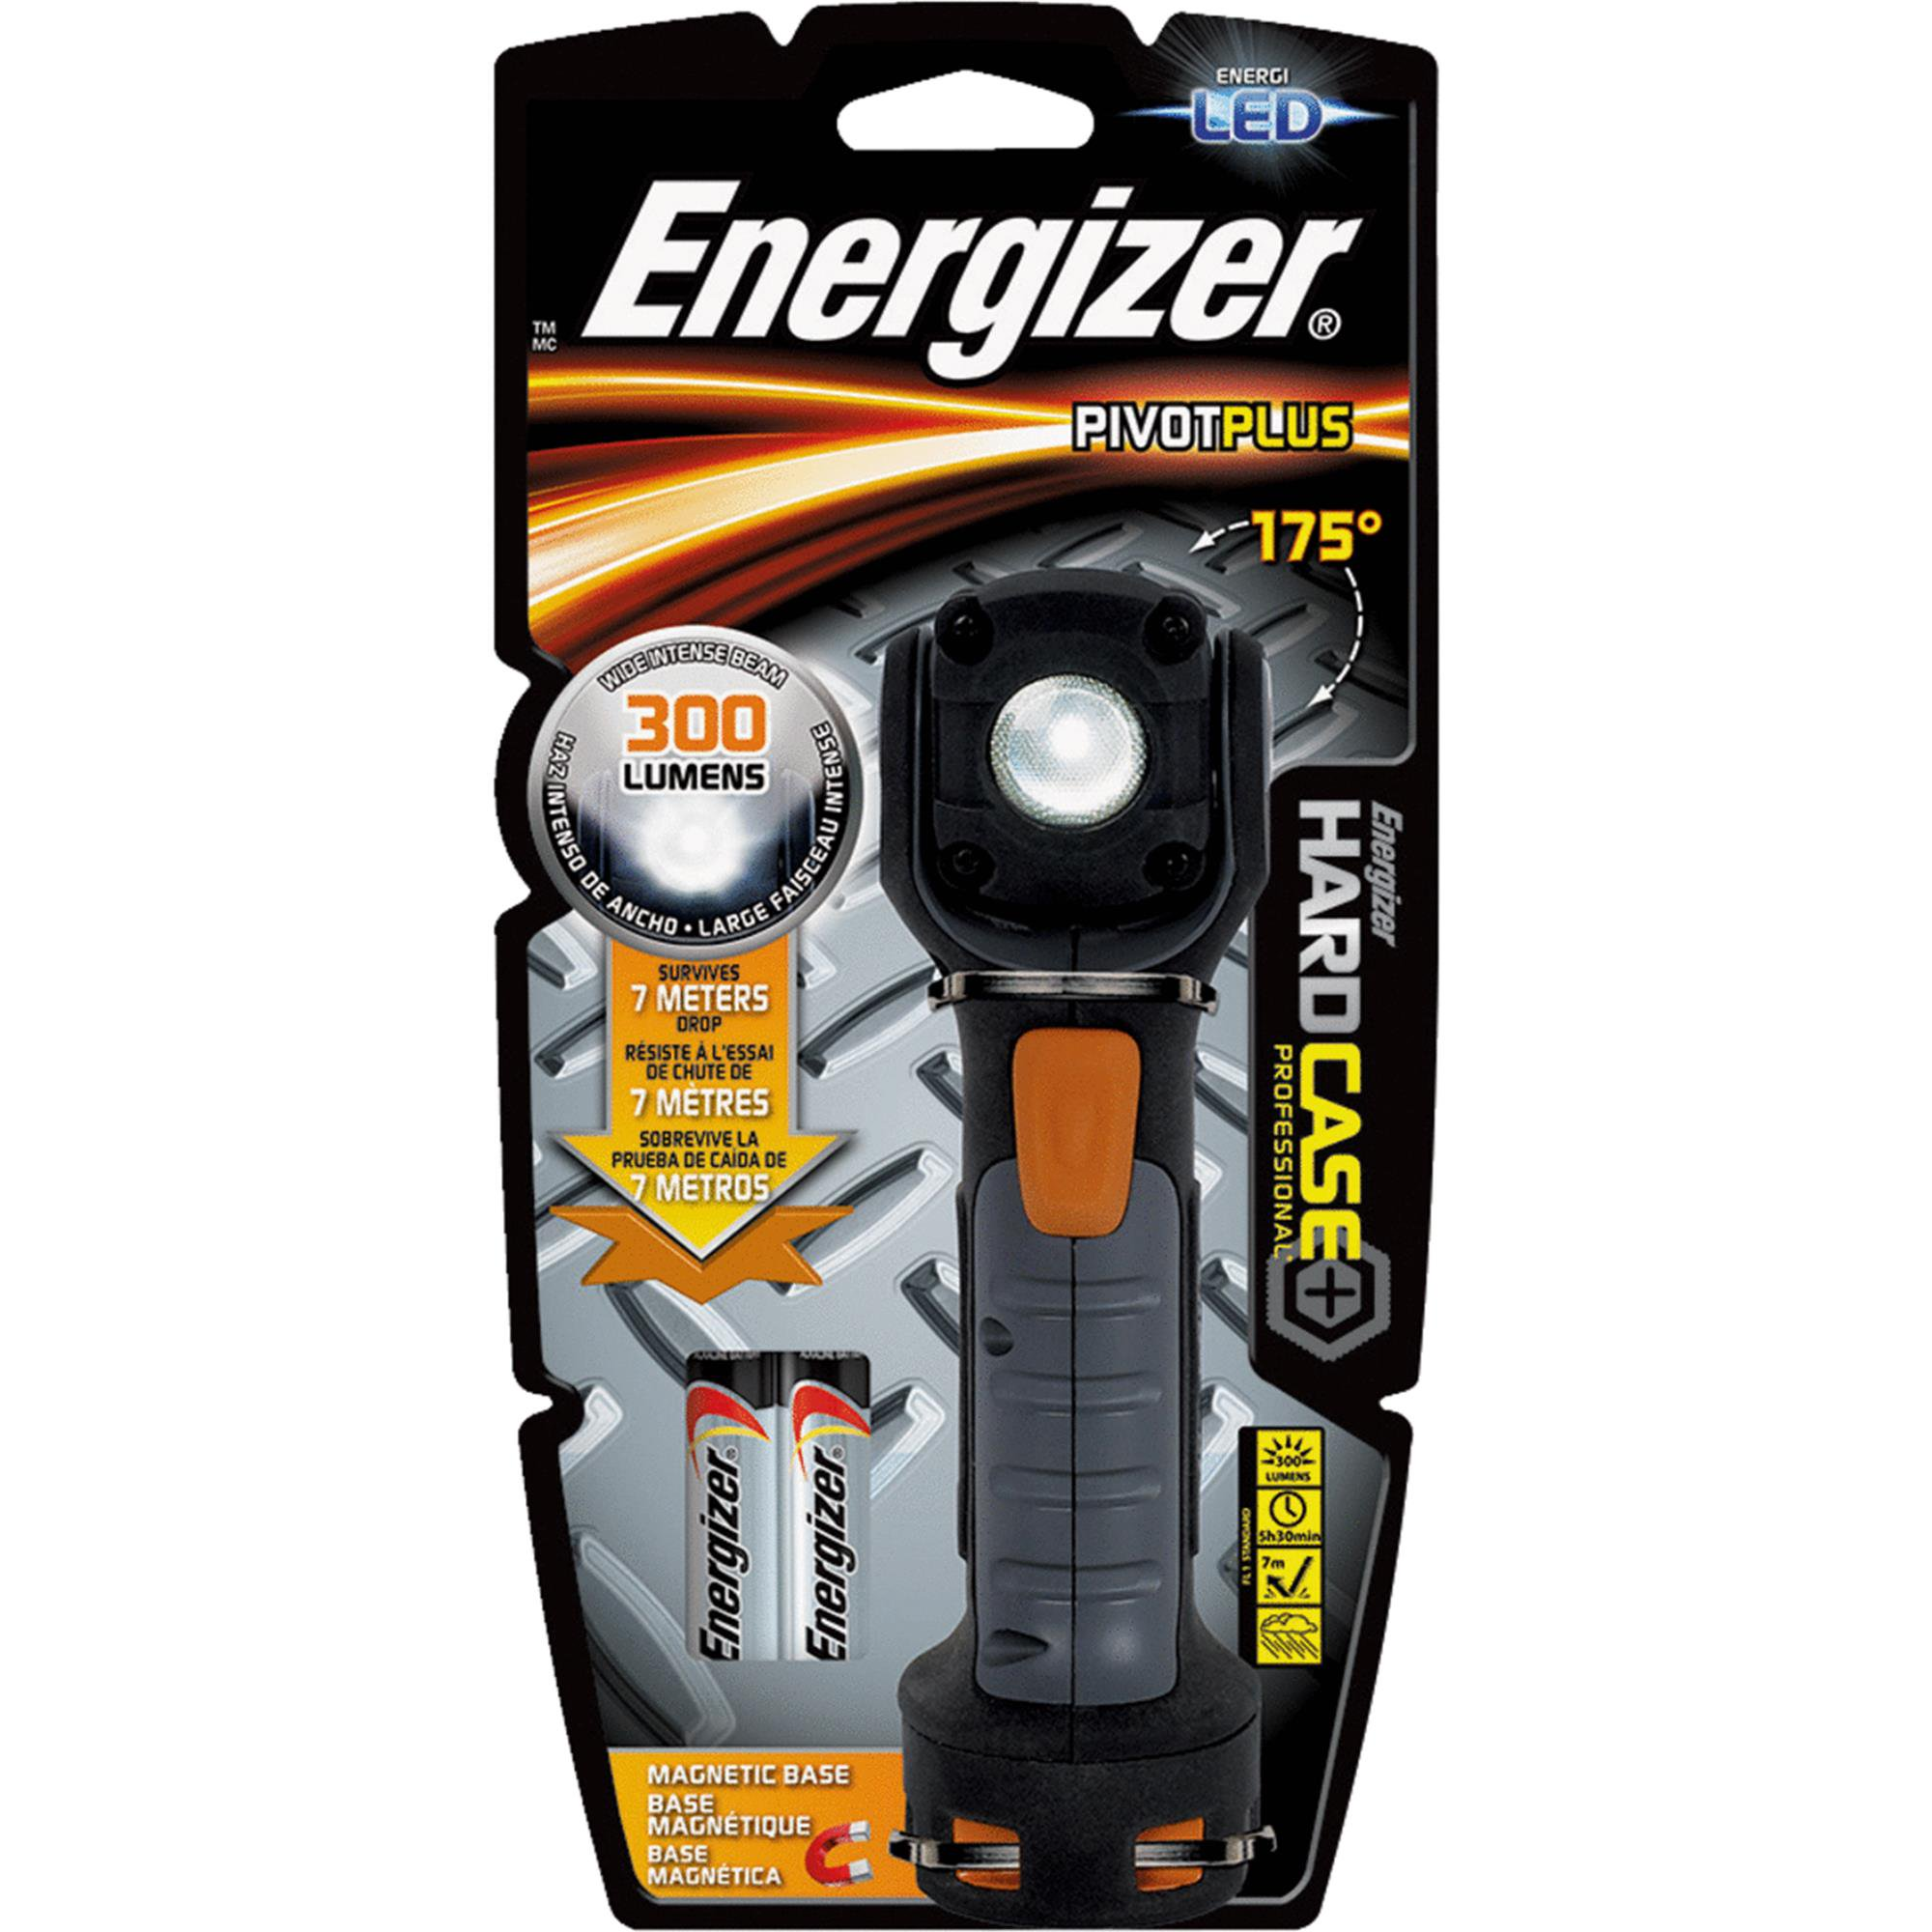 Energizer LED AA Work Light, Hard Case Professional PivotPlus Light, 5 Hour Run Time, 300 Lumens (Batteries Included)